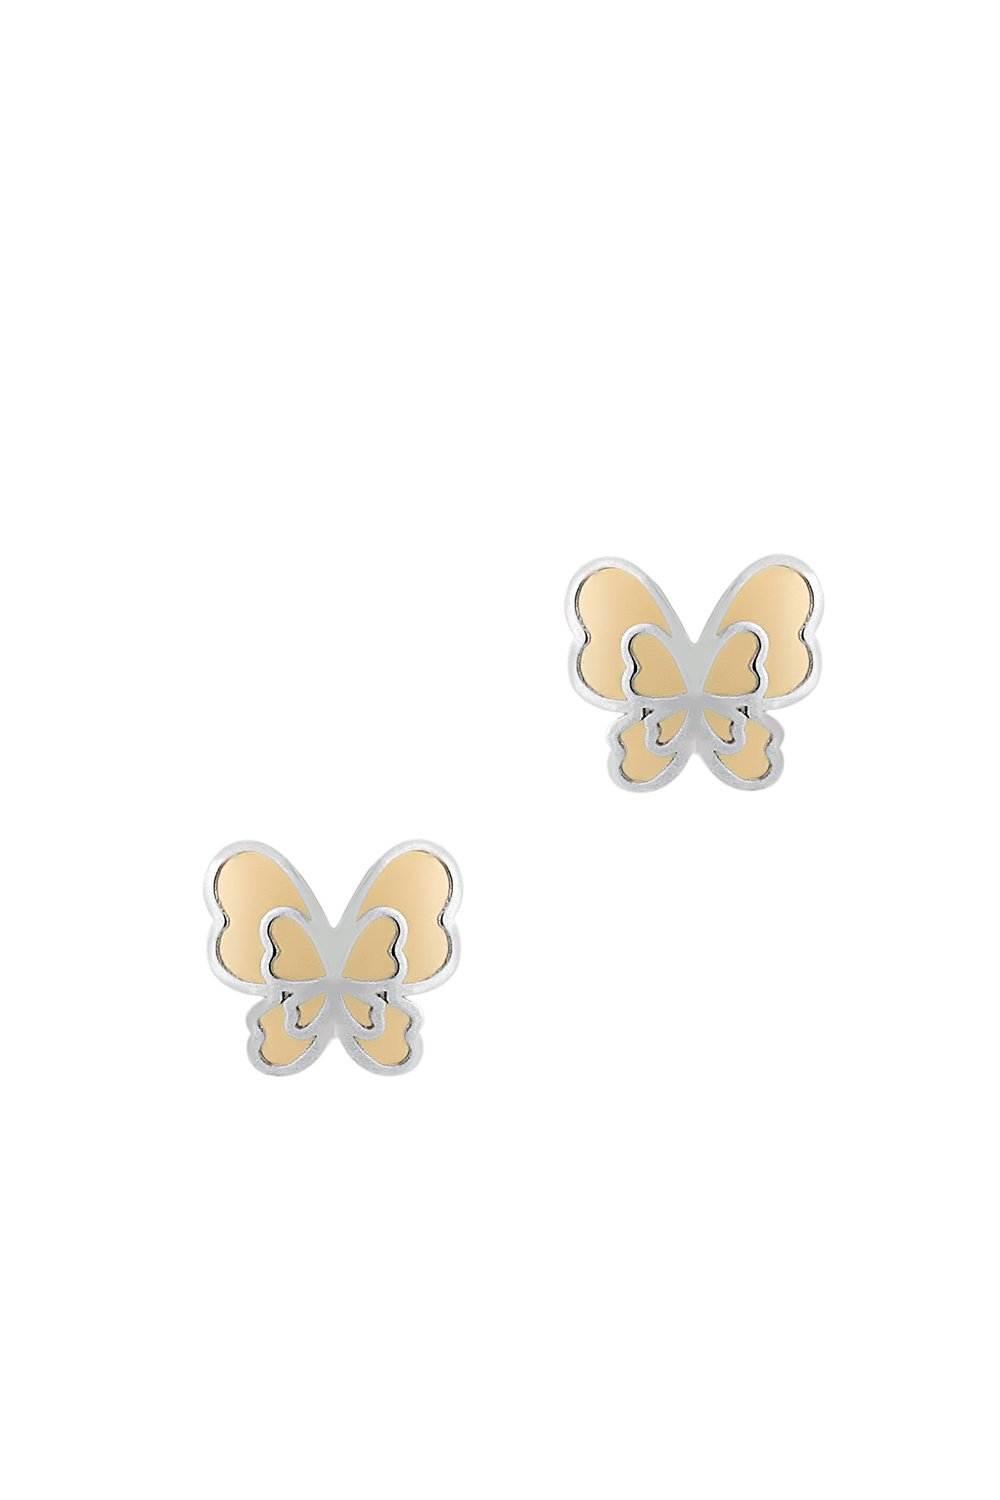 earrings free and shipping stud animal get lovely filled buy design with rose jewelry childrens aliexpress on com w baby wholesale gold